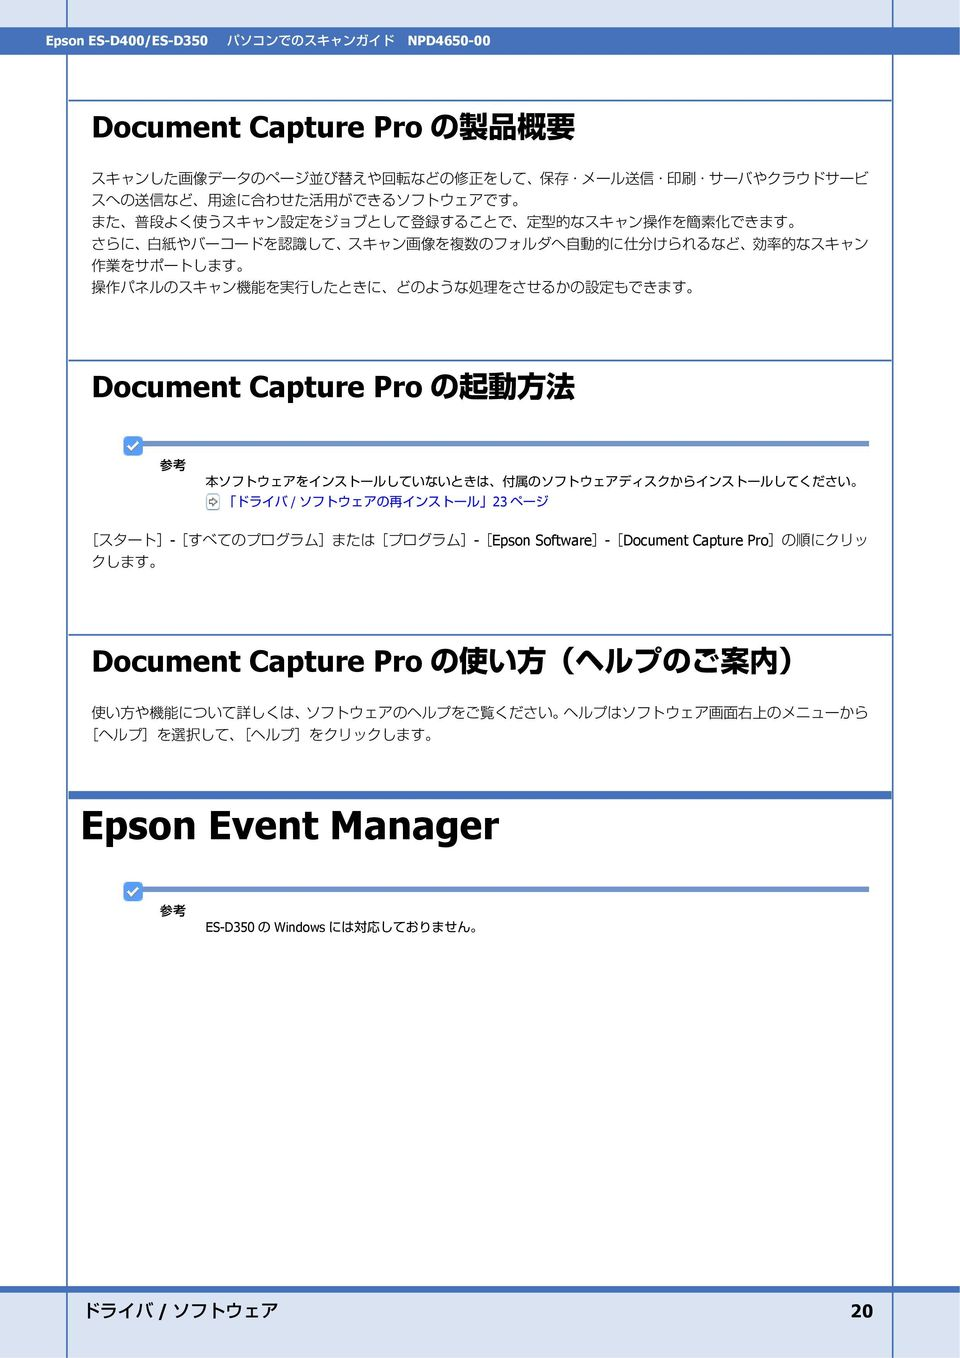 Epson Event Manager ES-D350 Windows /